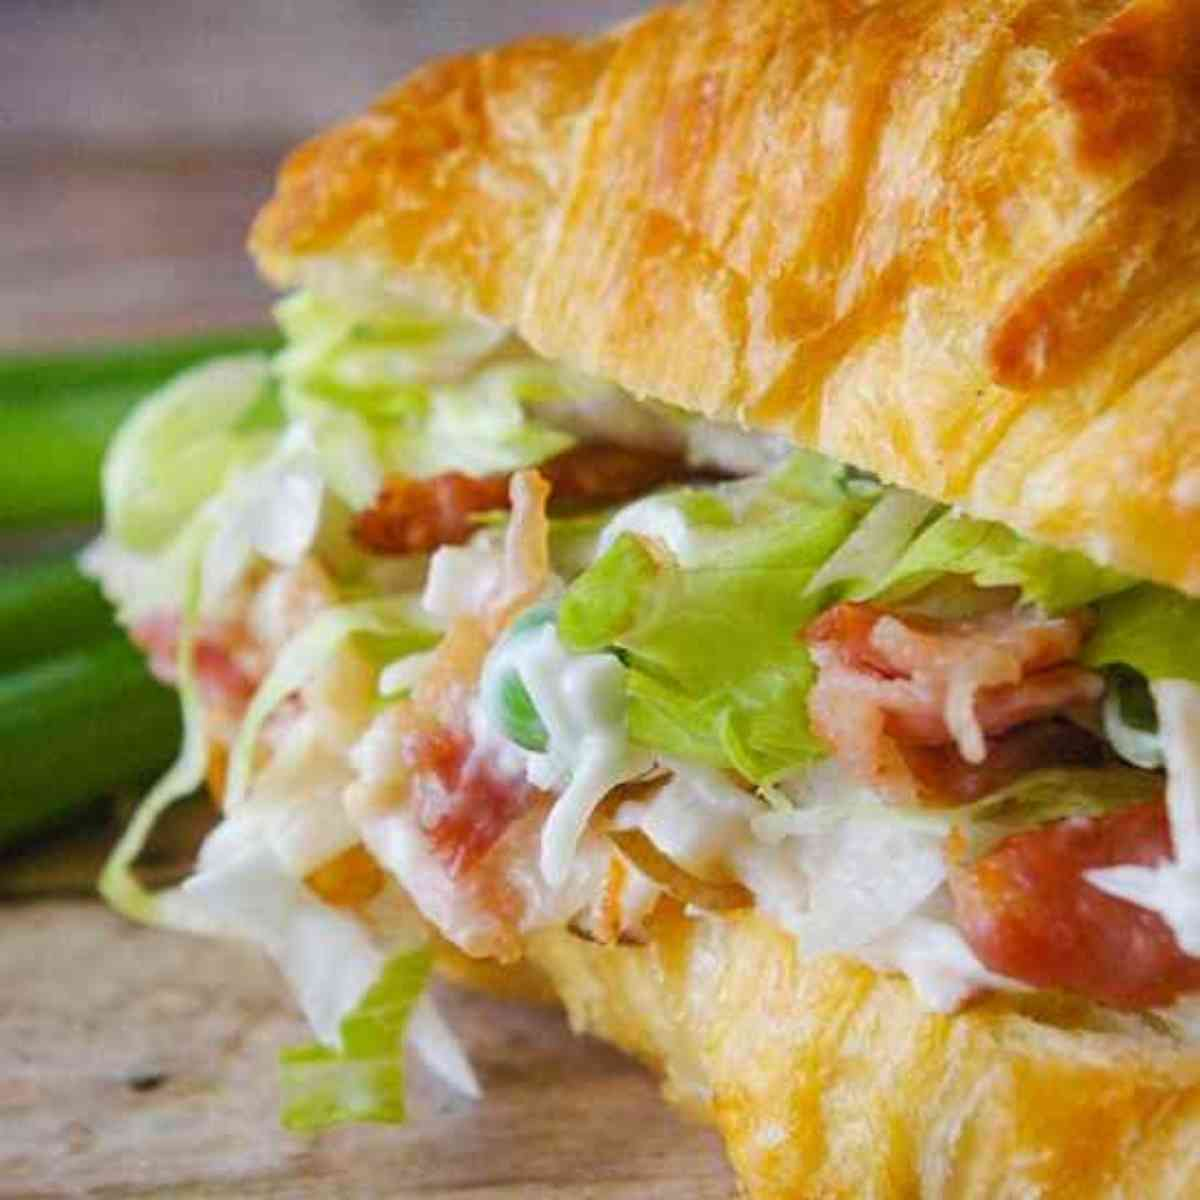 Turkey salad on a croissant!